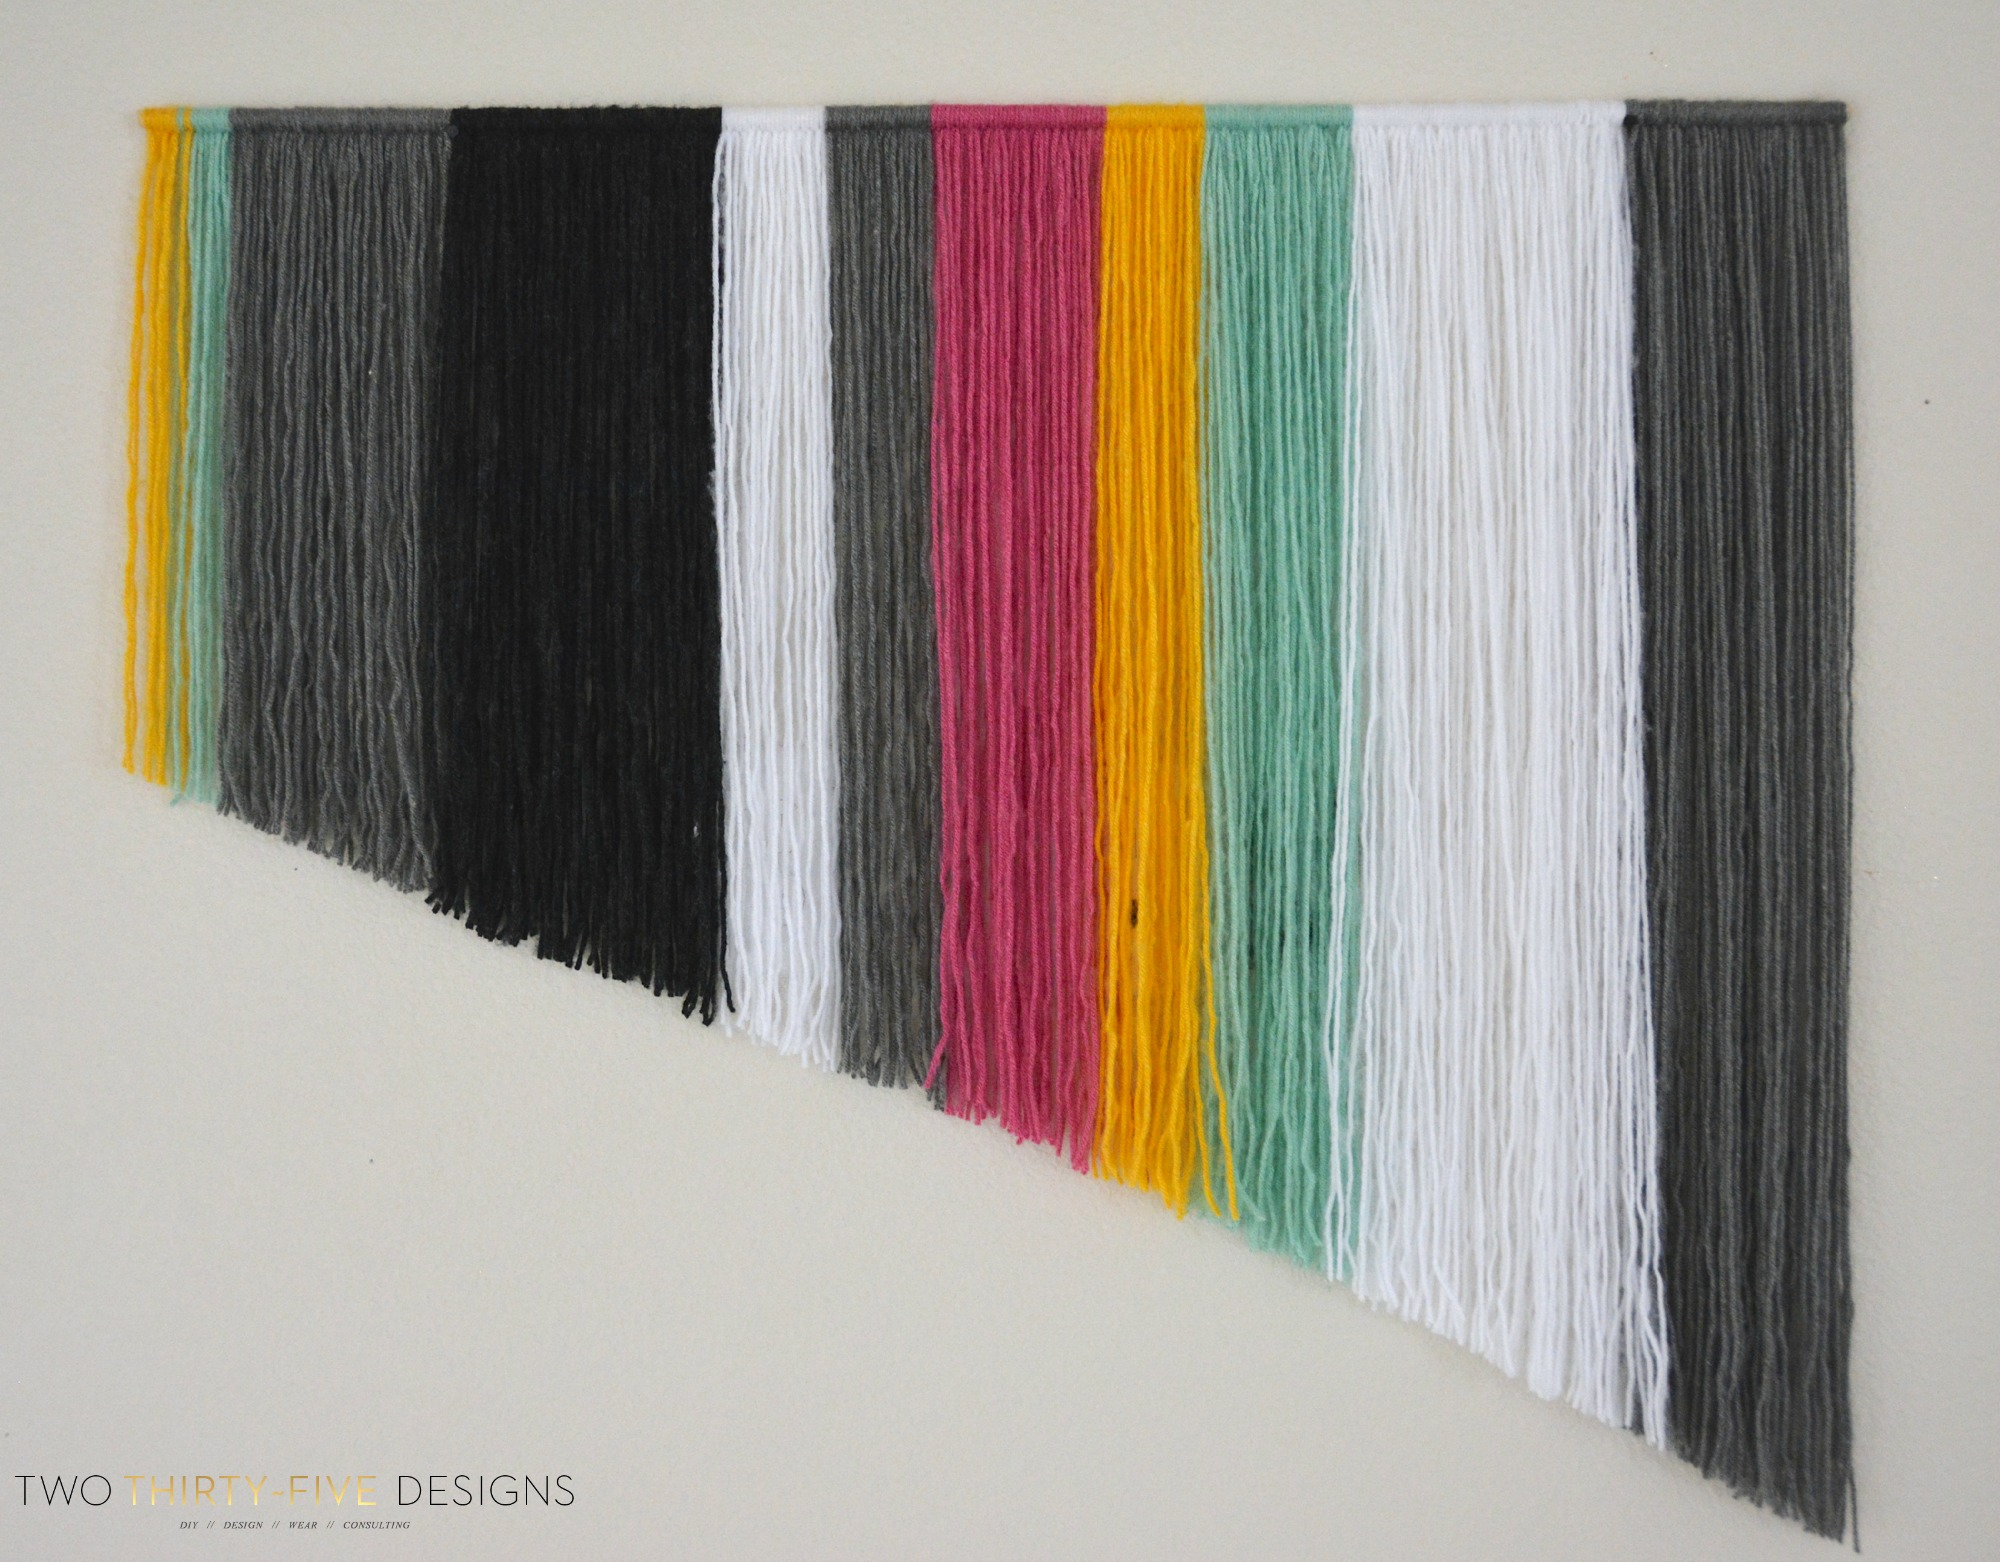 Design Diy Art diy yarn wall art two thirty five designs by thirtyfive designs